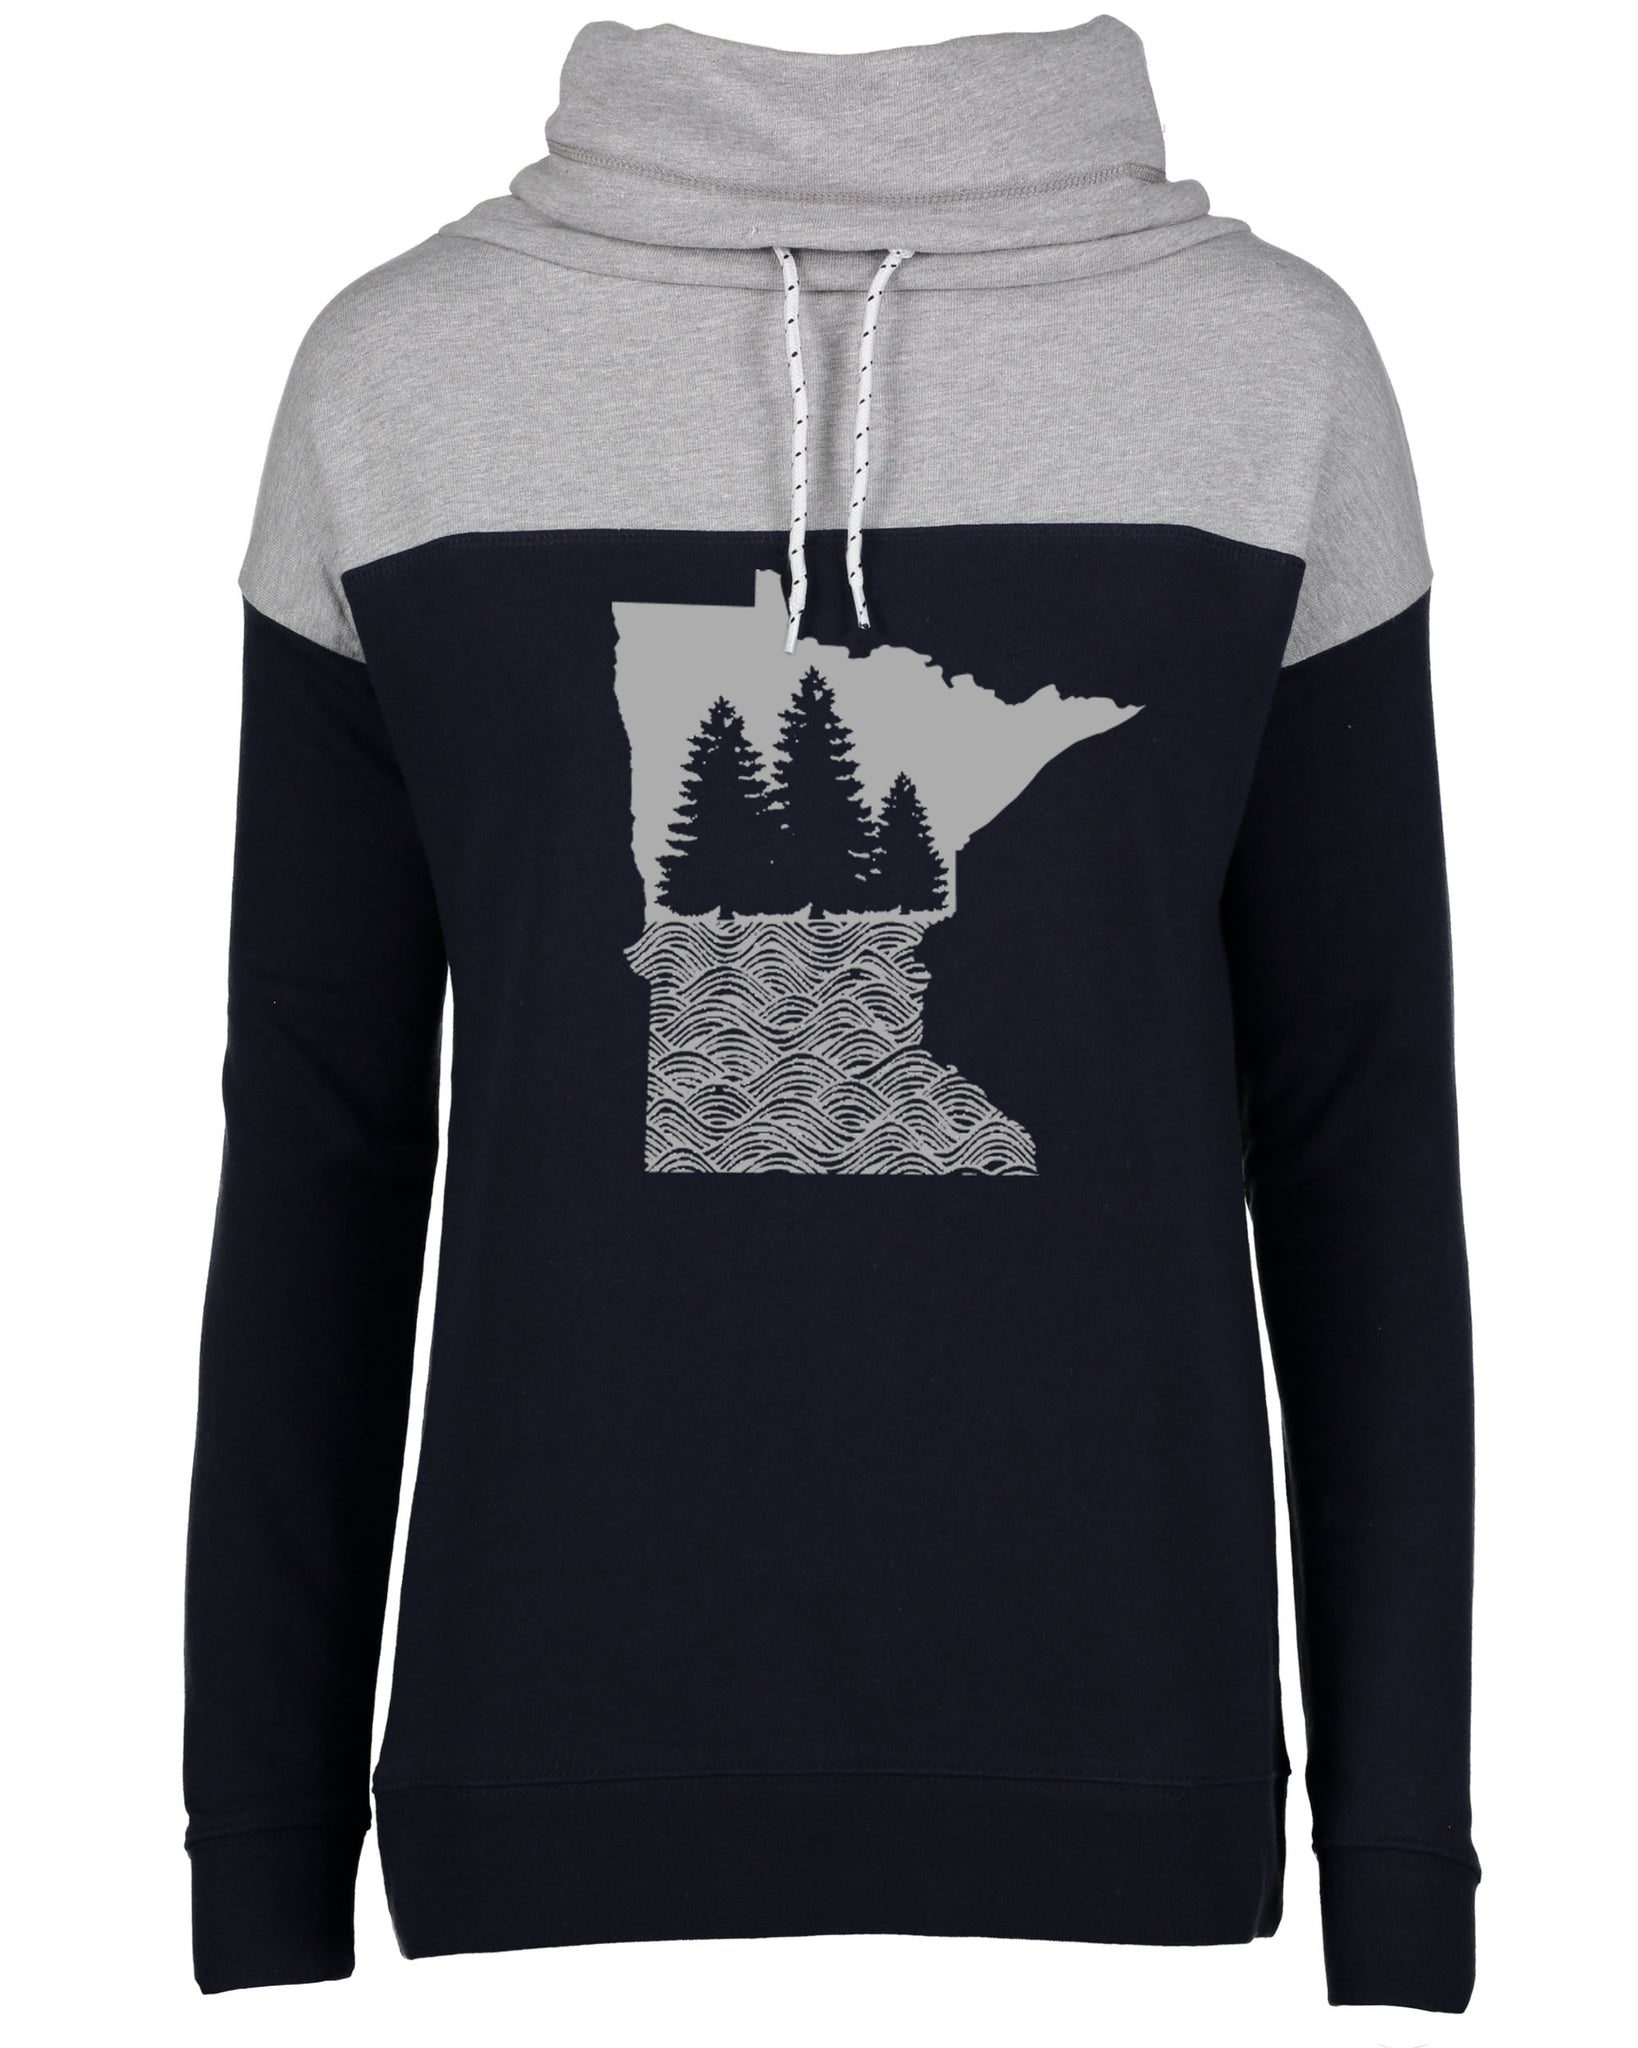 MN Trees & Waves Cowl Neck Sweatshirt